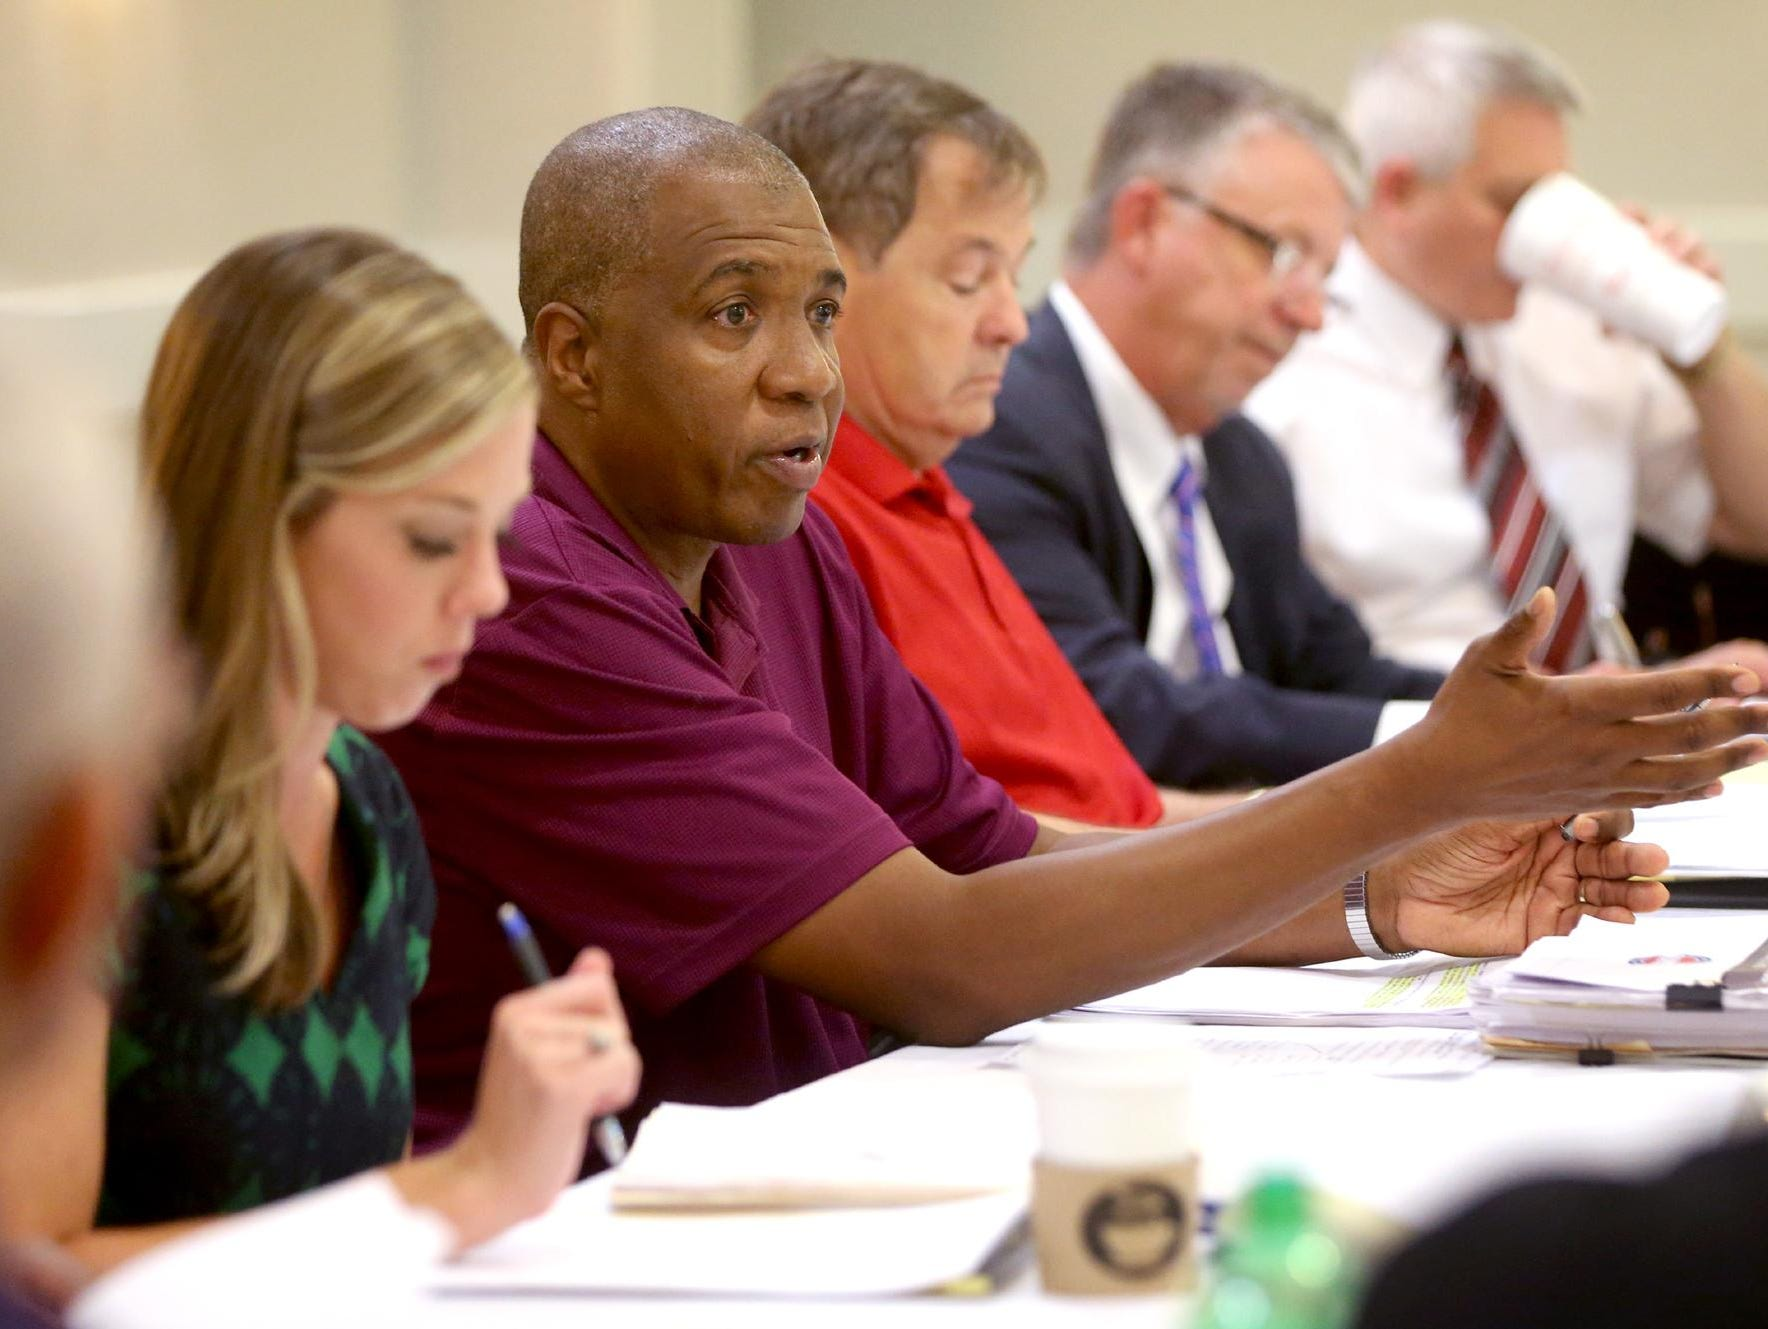 TSSAA Executive Director Bernard Childress answers questions during the TSSAA Legislative Council Meeting held at the DoubleTree Hotel, in Murfreesboro, on Thursday, July 16, 2015.